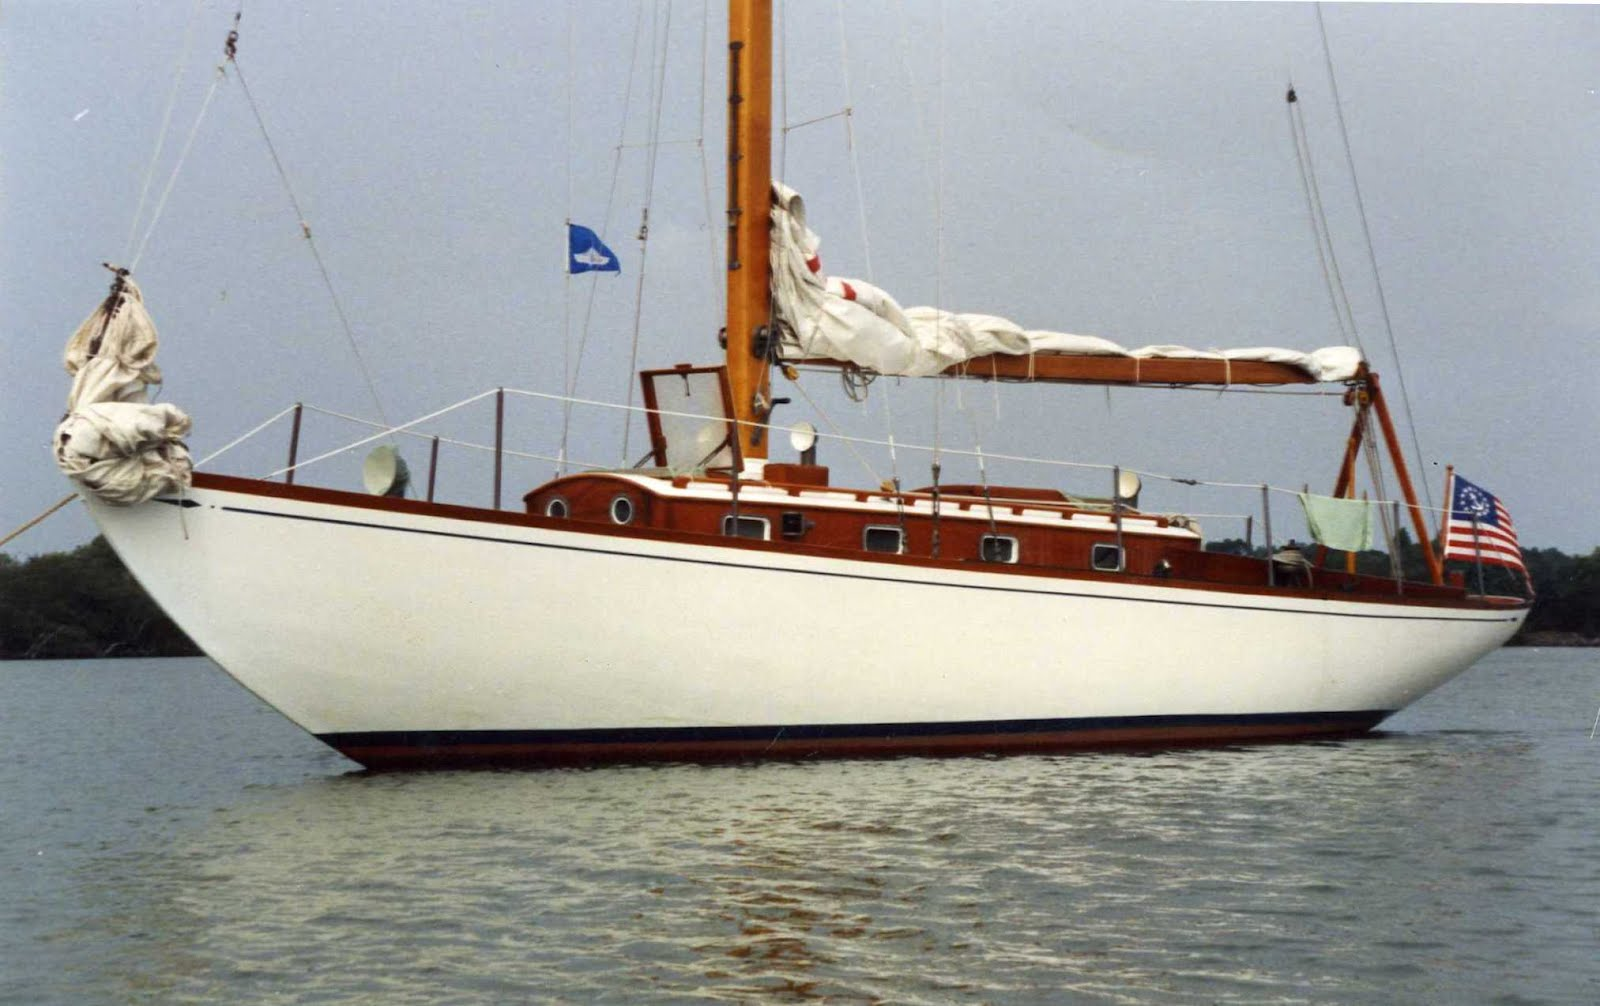 She is one of a series of boats built by Fisher Boat Works of Chicago to S&S ...